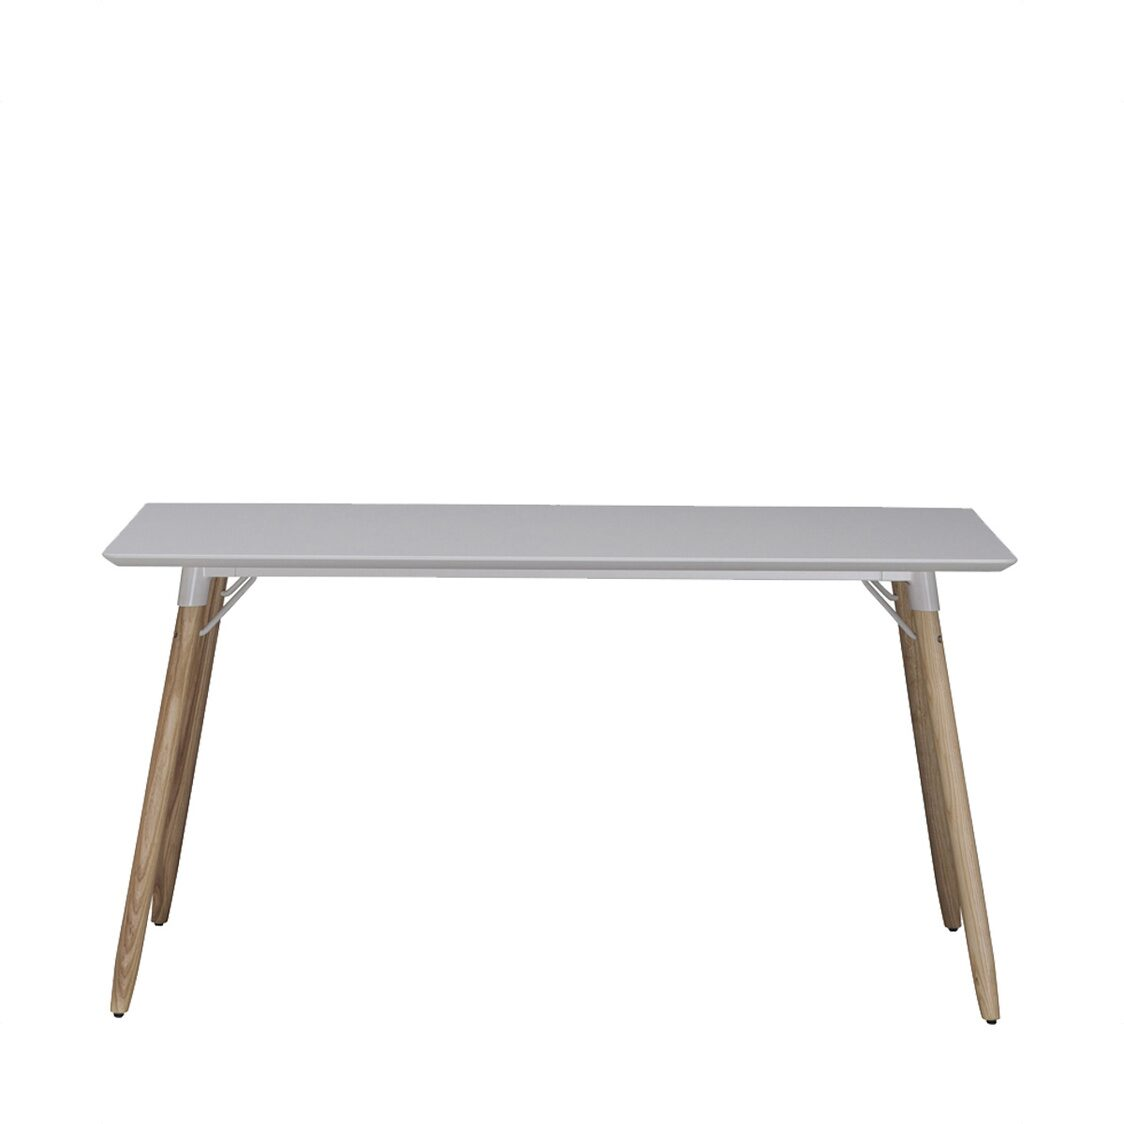 Iloom BIBI Dining Table for 4  HT30T14EL-WWAD